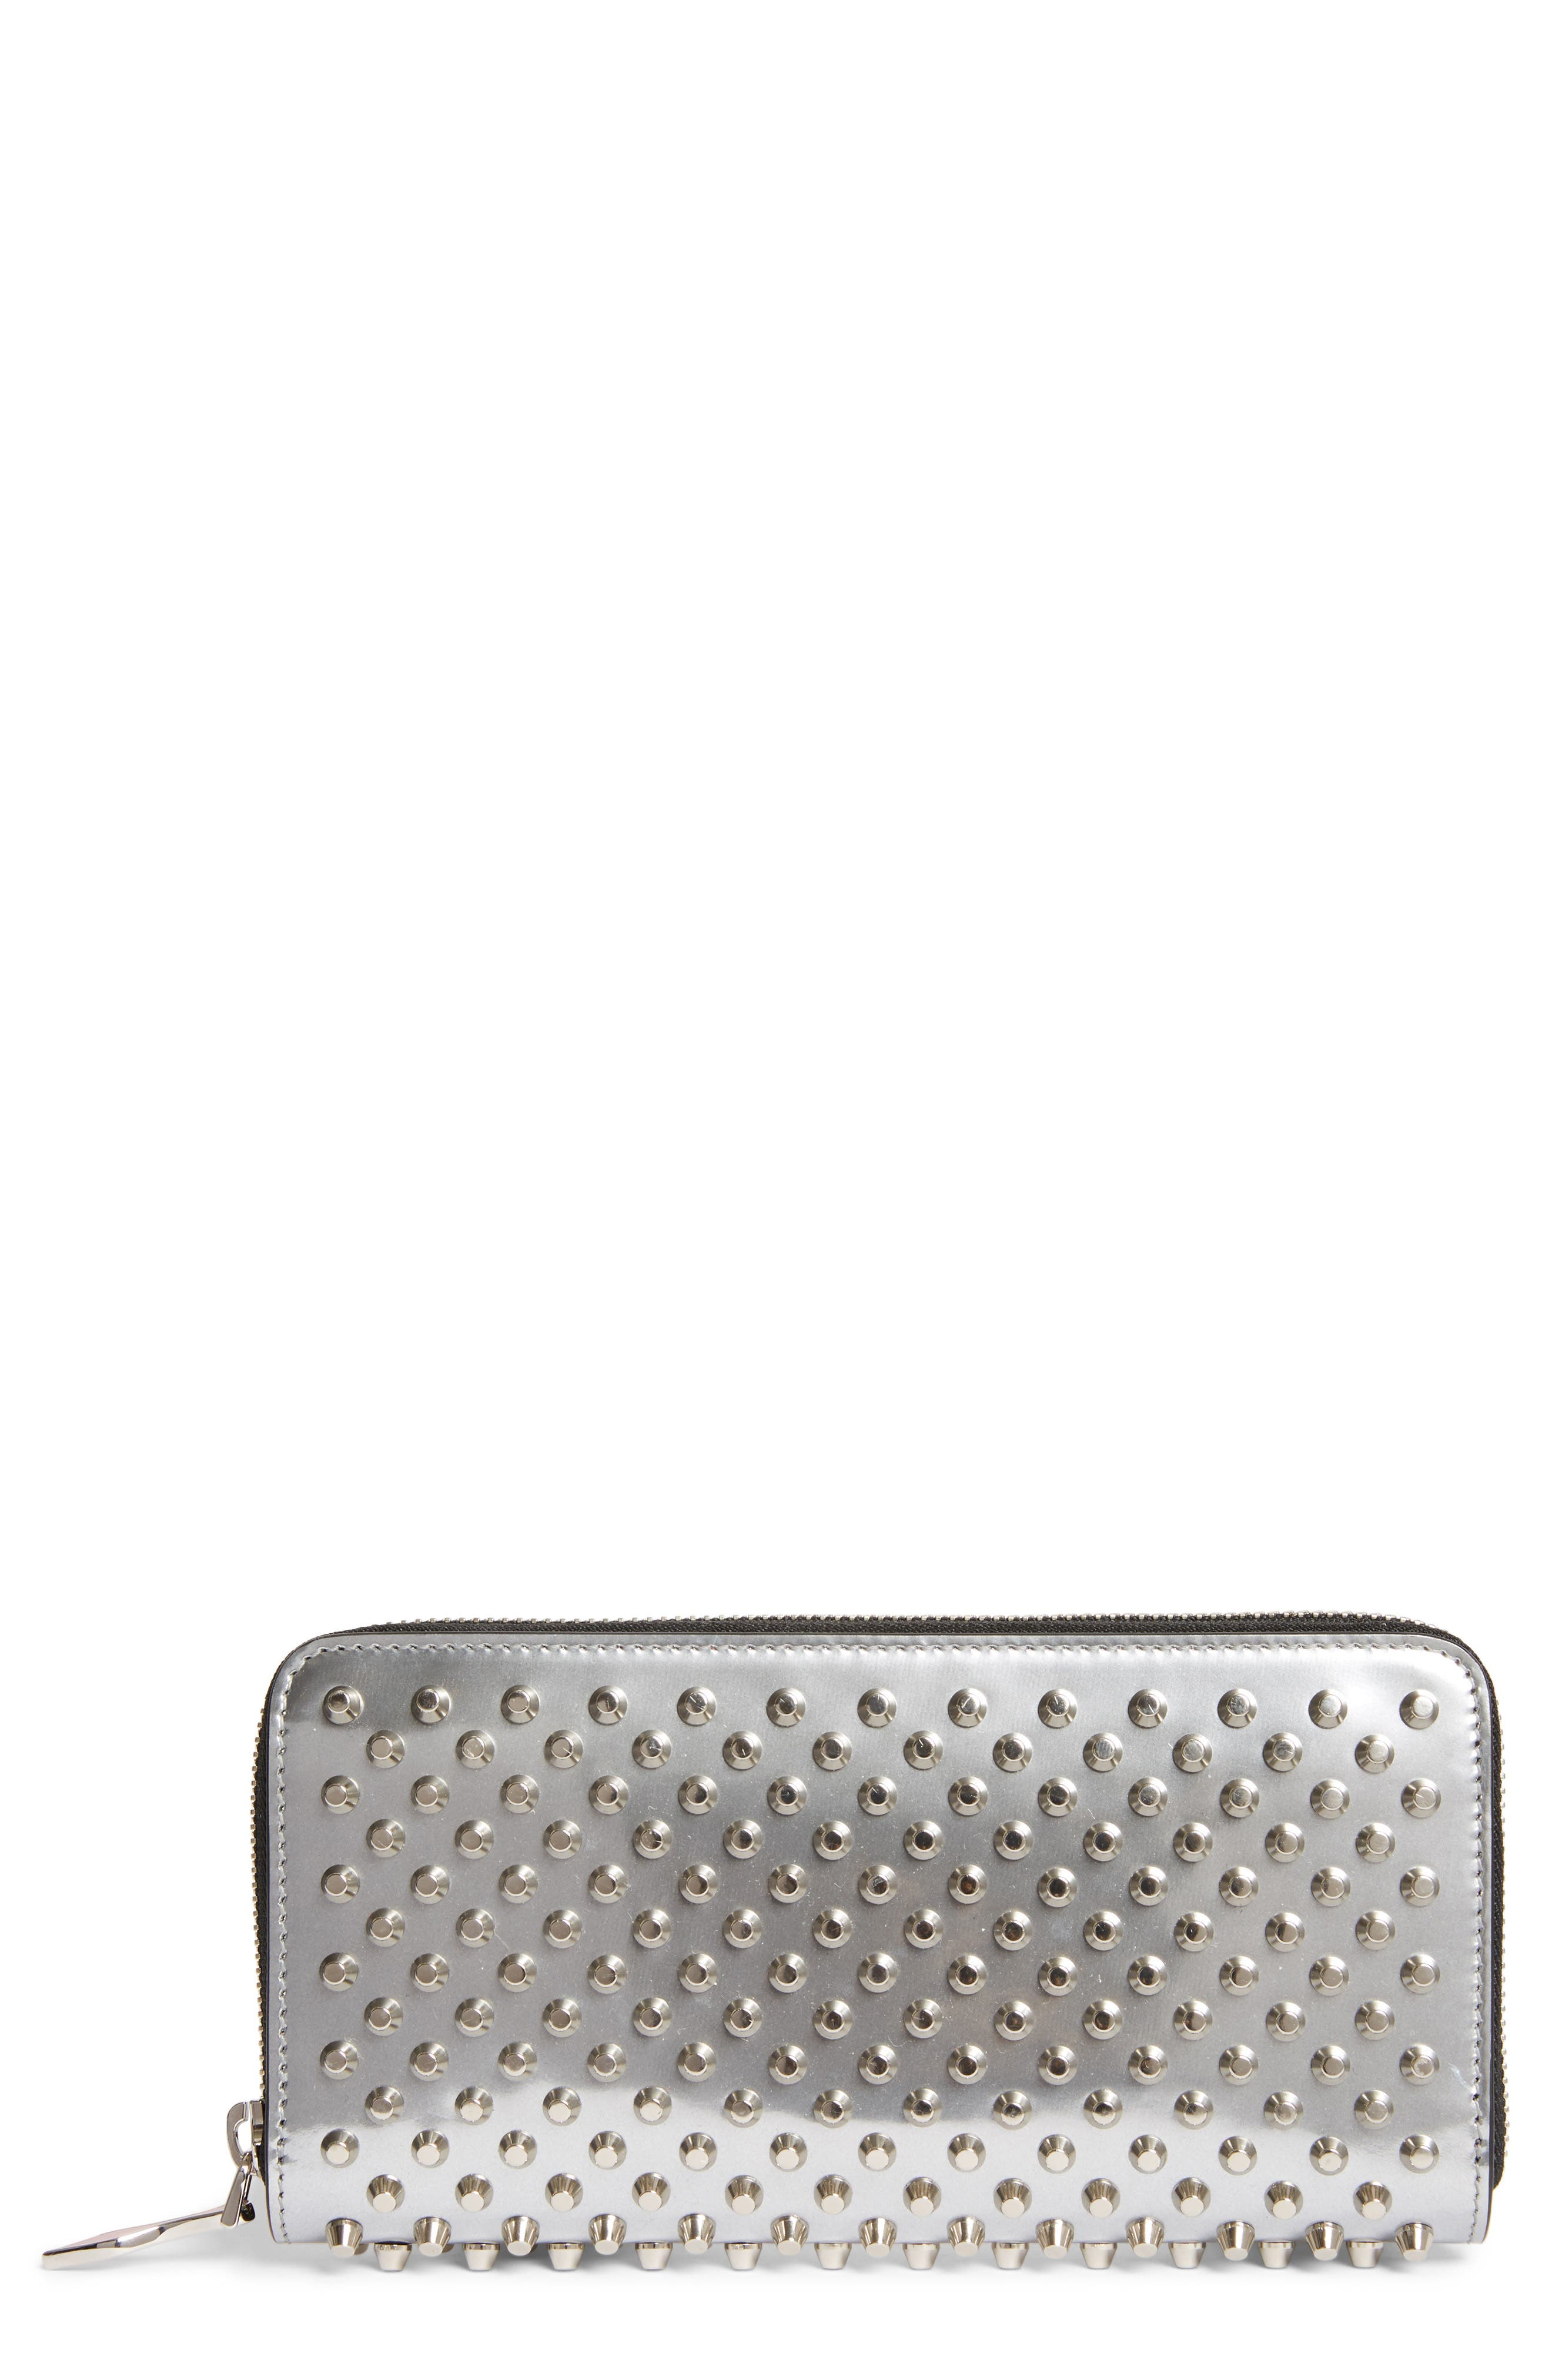 Panettone Spiked Metallic Leather Wallet,                         Main,                         color,